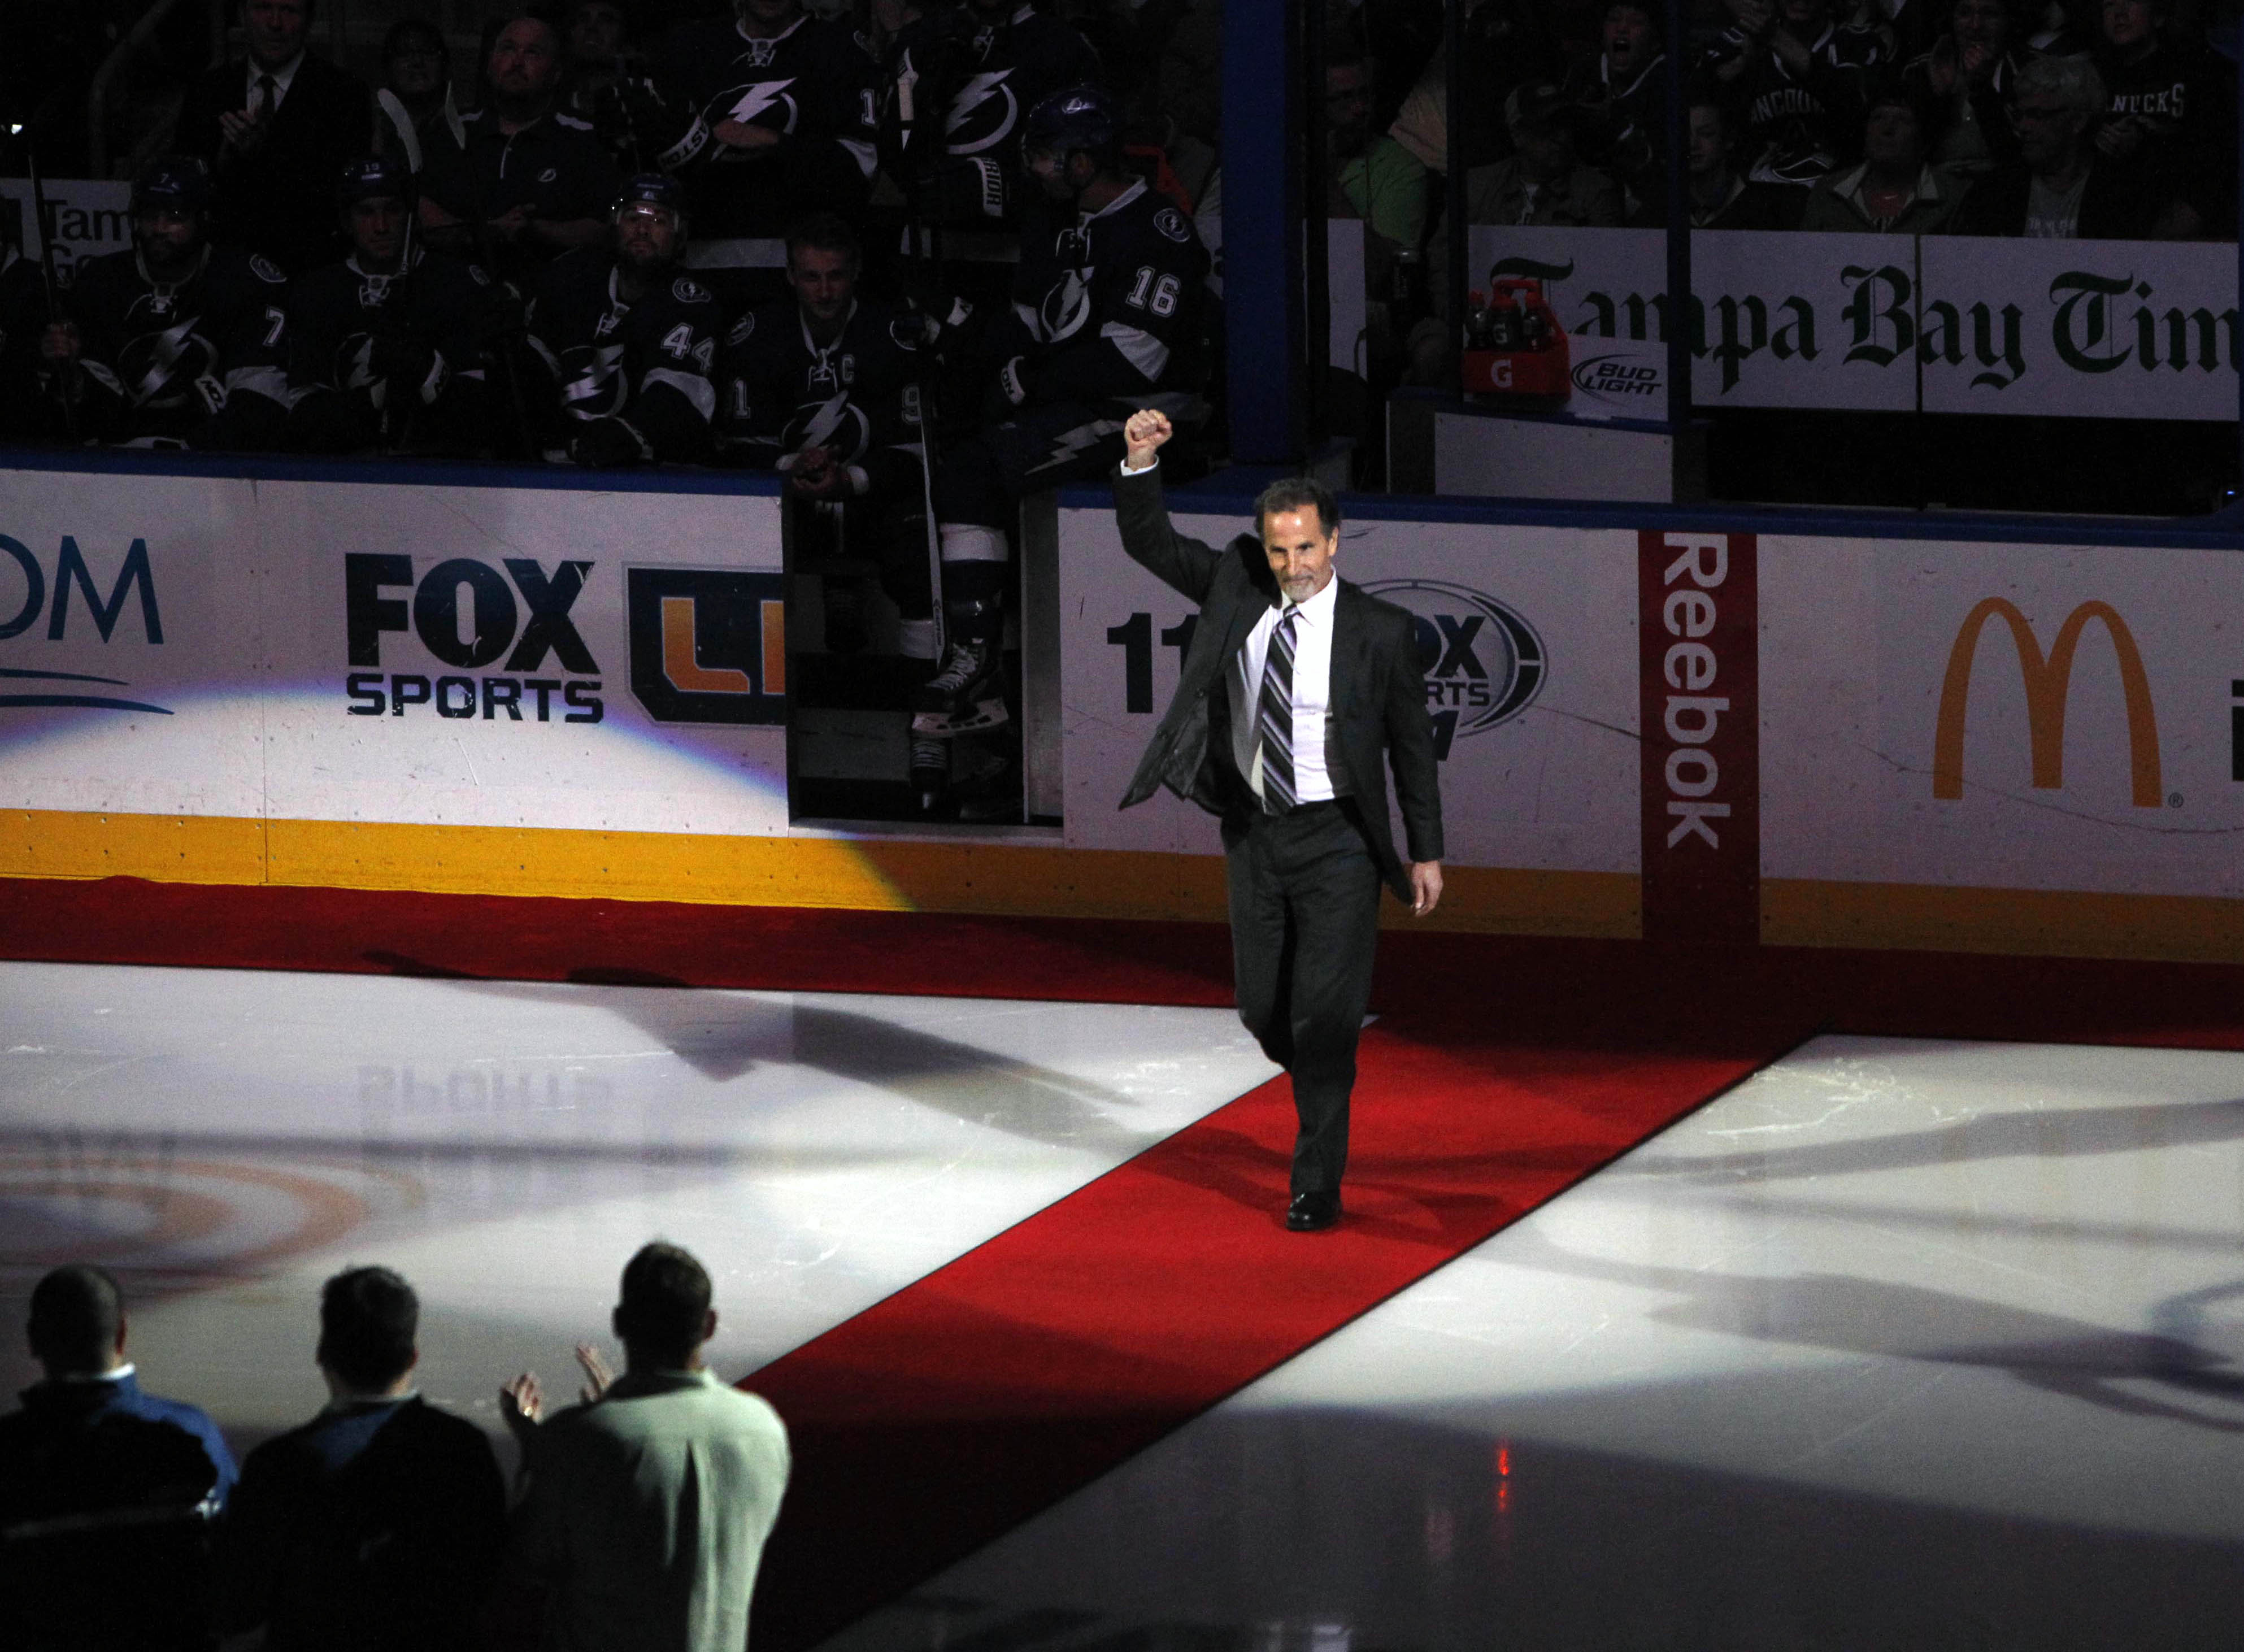 Stanley Cup-winning head coach John Tortorella will return to Amalie Arena to be part of the festivities at Hockey Day in Tampa Bay